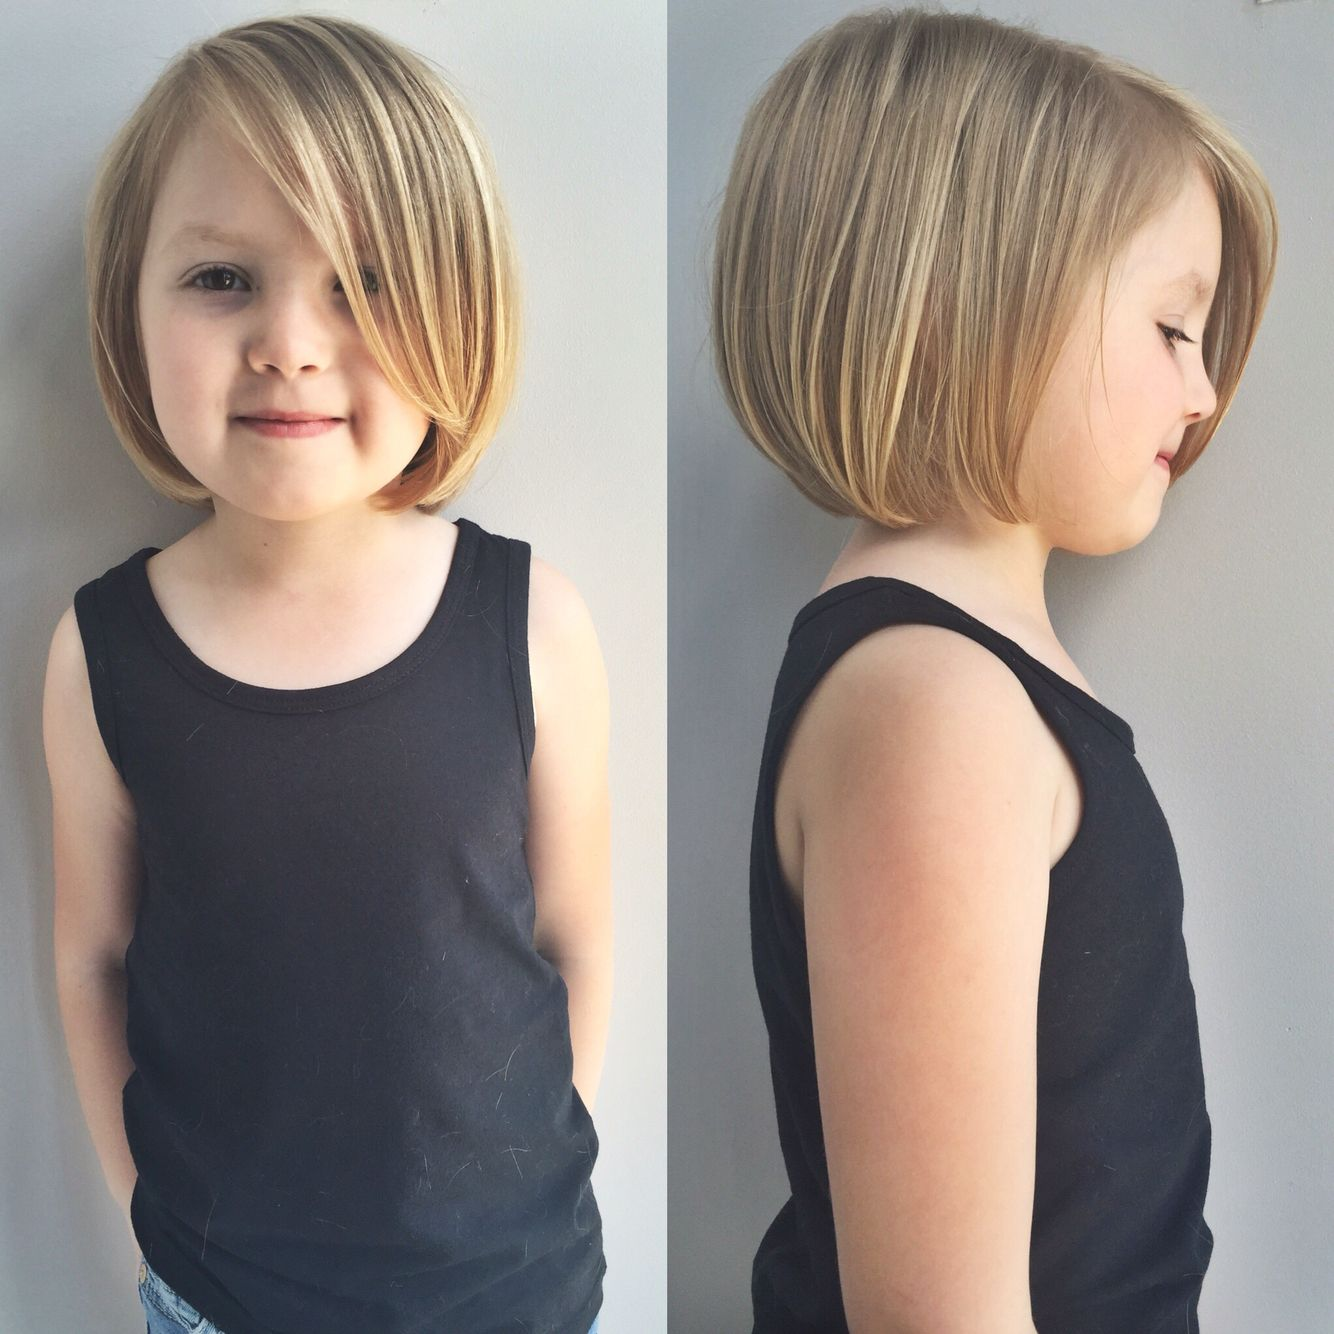 Kids Hairstyles. Little Girls Haircut. Kids Haircut